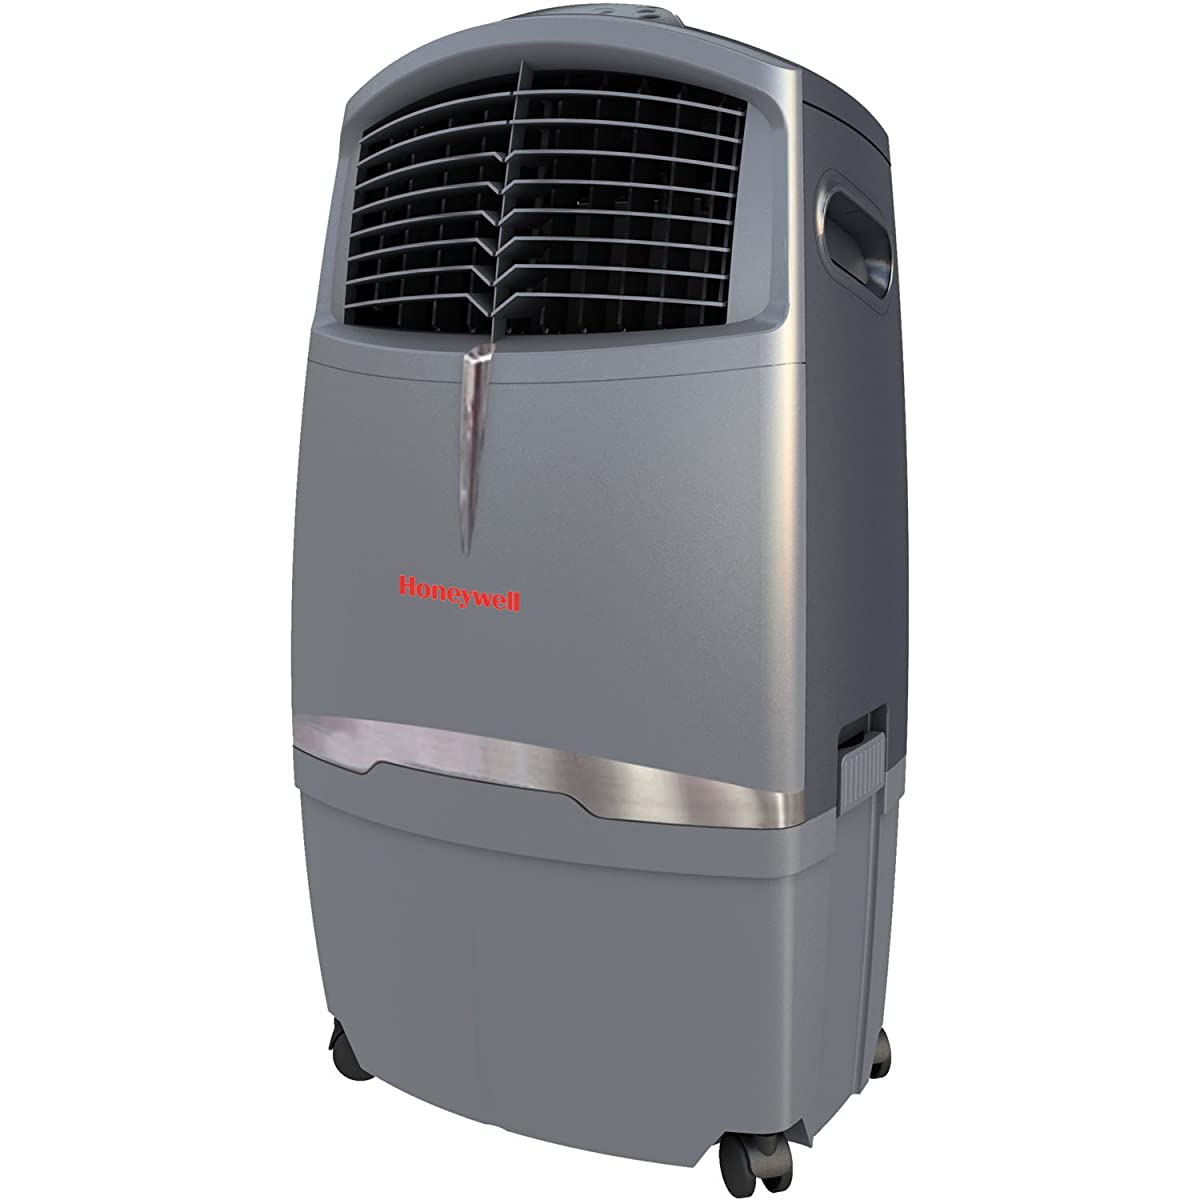 Honeywell CL30XC 63 Pt. Indoor Portable Evaporative Air Cooler with Remote Control, Grey